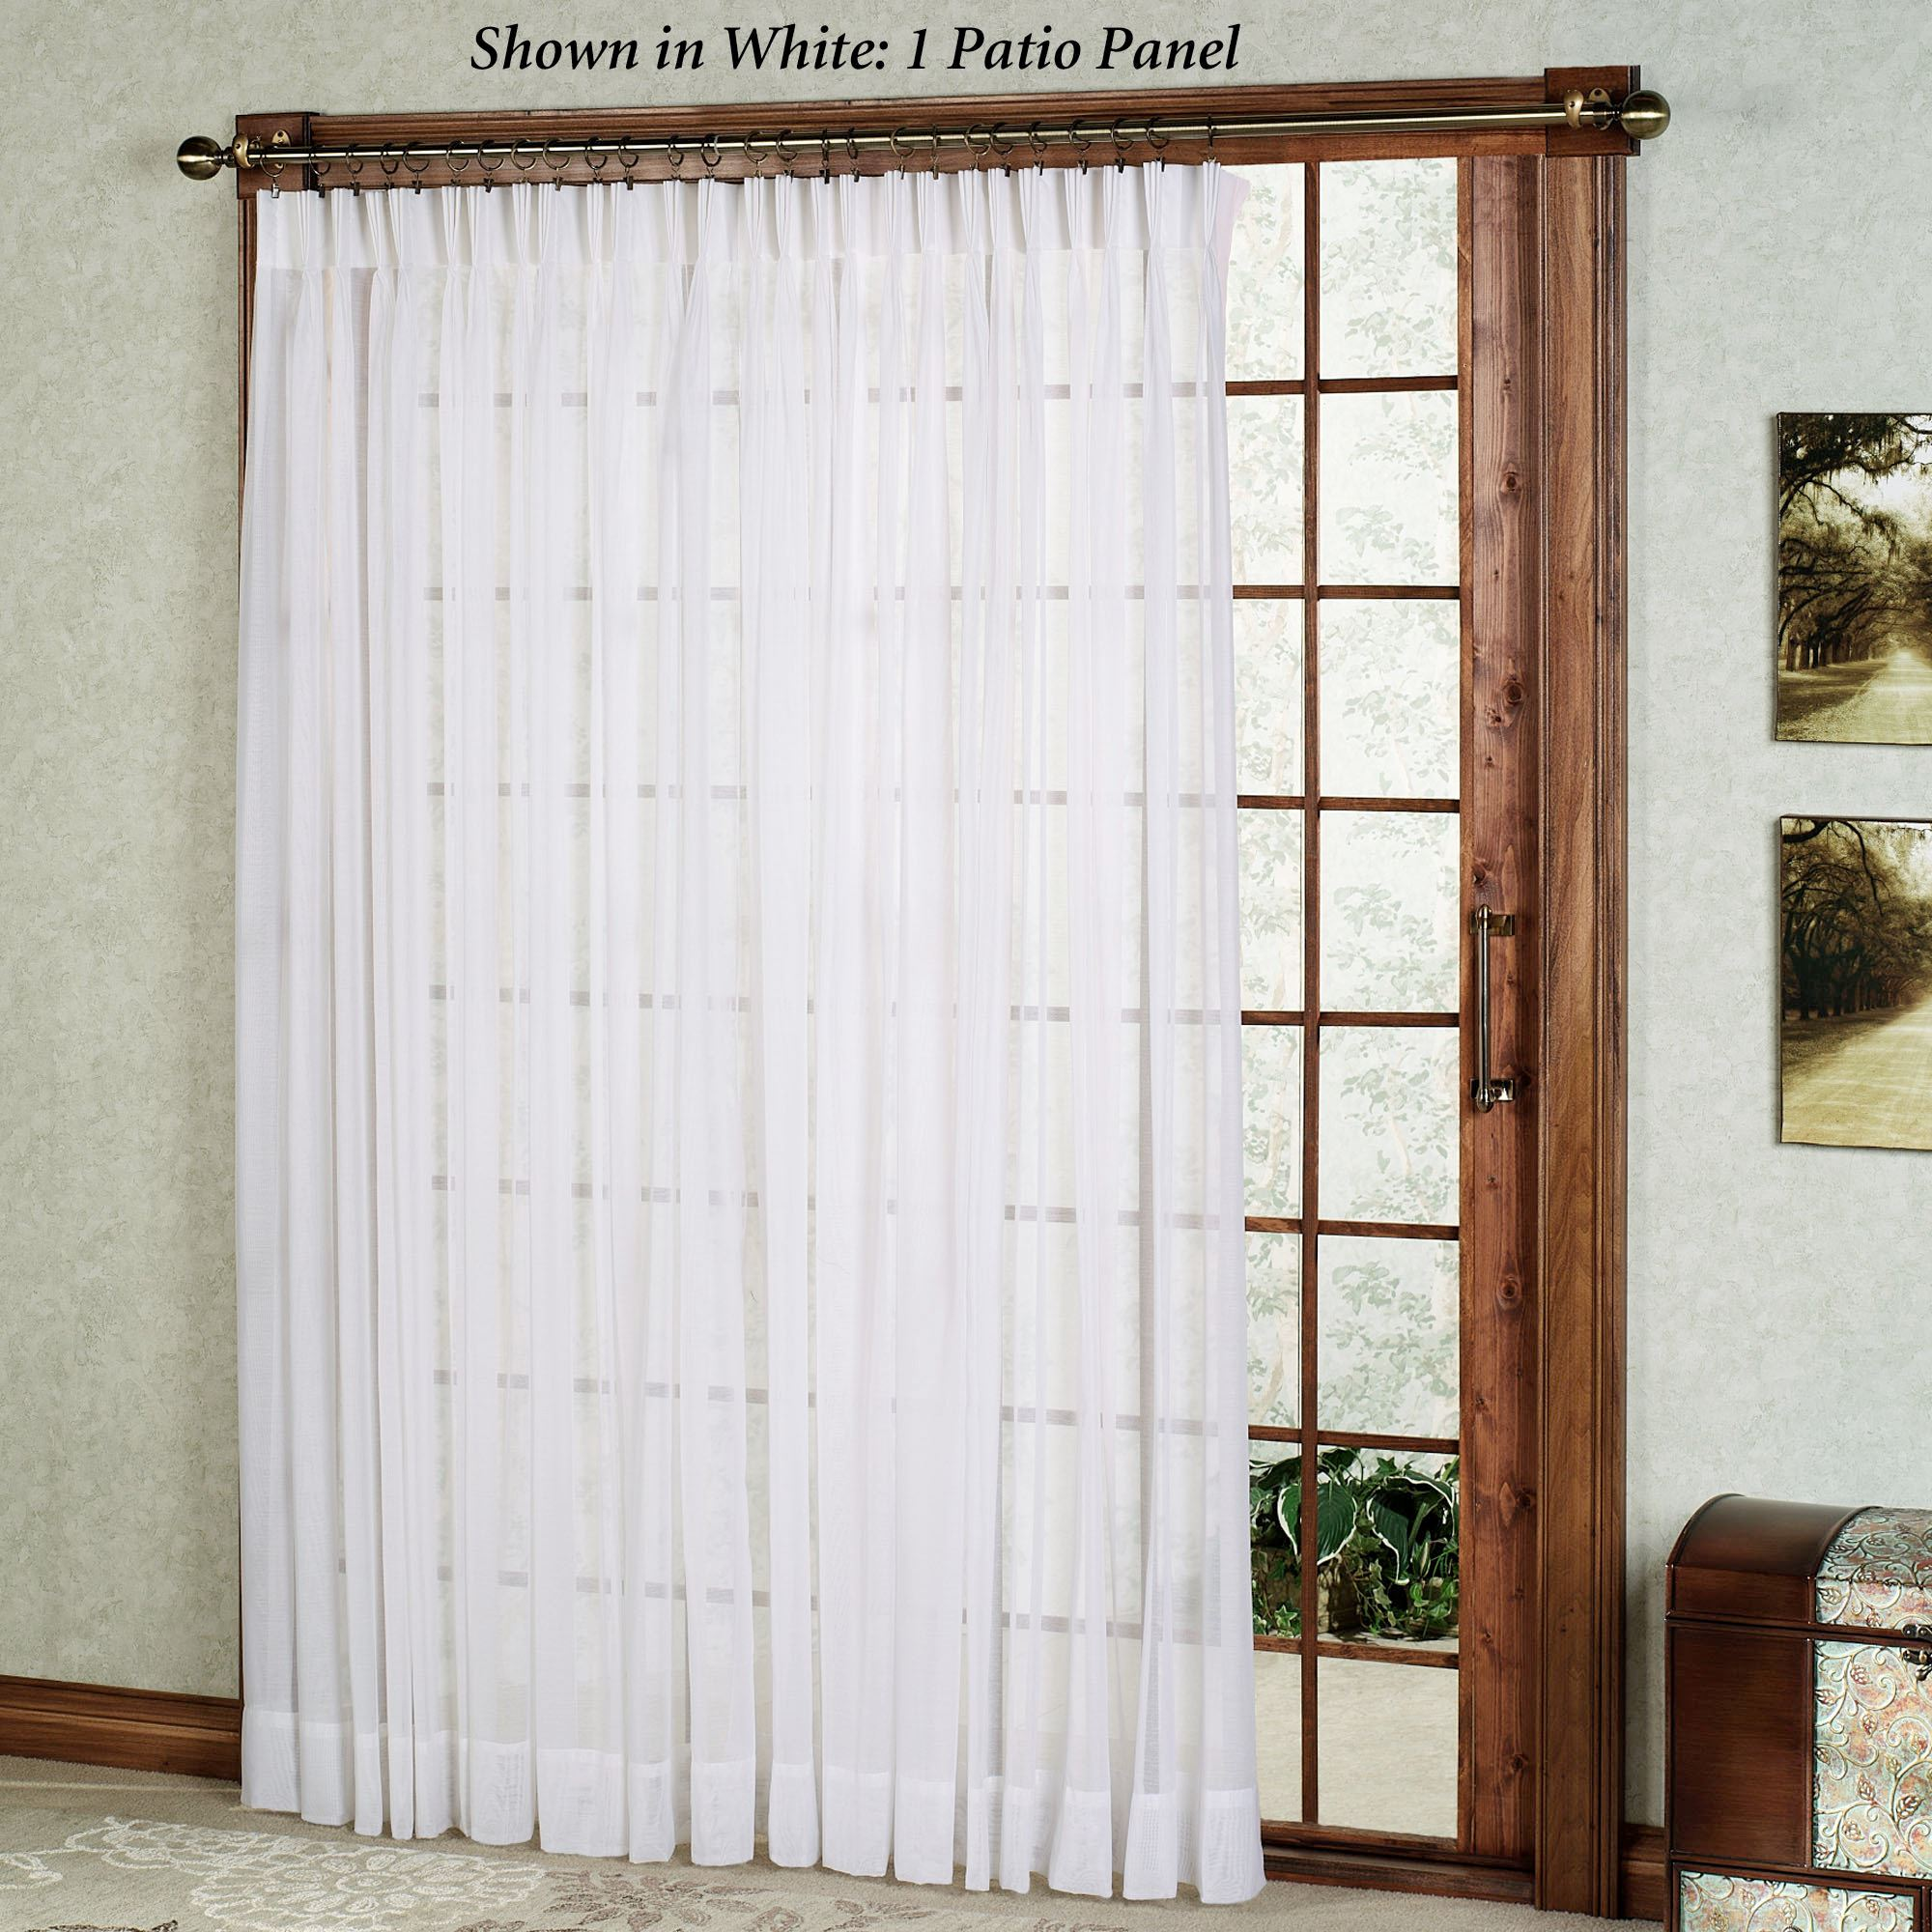 FREE SHIPPING. Splendor Pinch Pleat Patio Panel ...